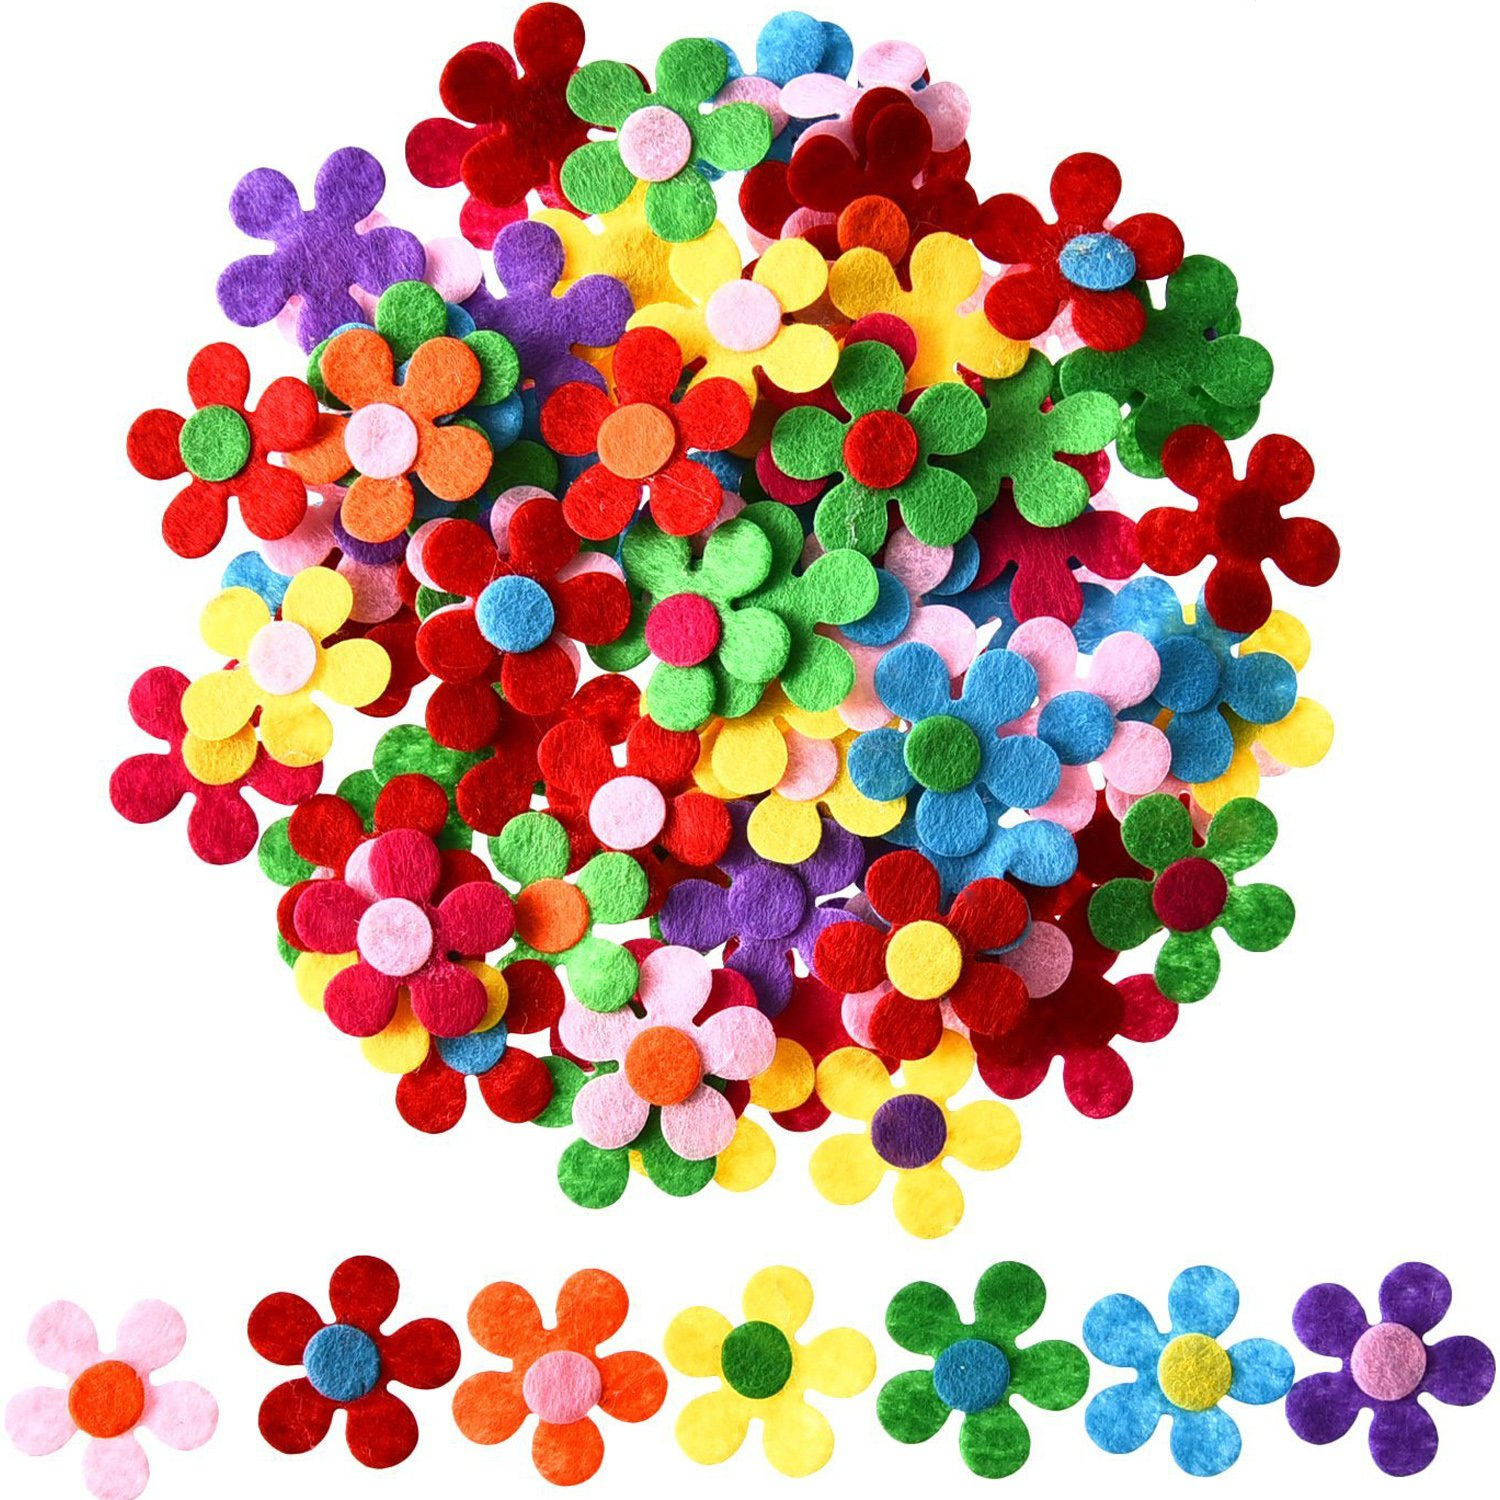 Sumind 100 Pieces Felt Flowers Fabric Flower Embellishments for DIY Crafts, Assorted Colors 4336935026